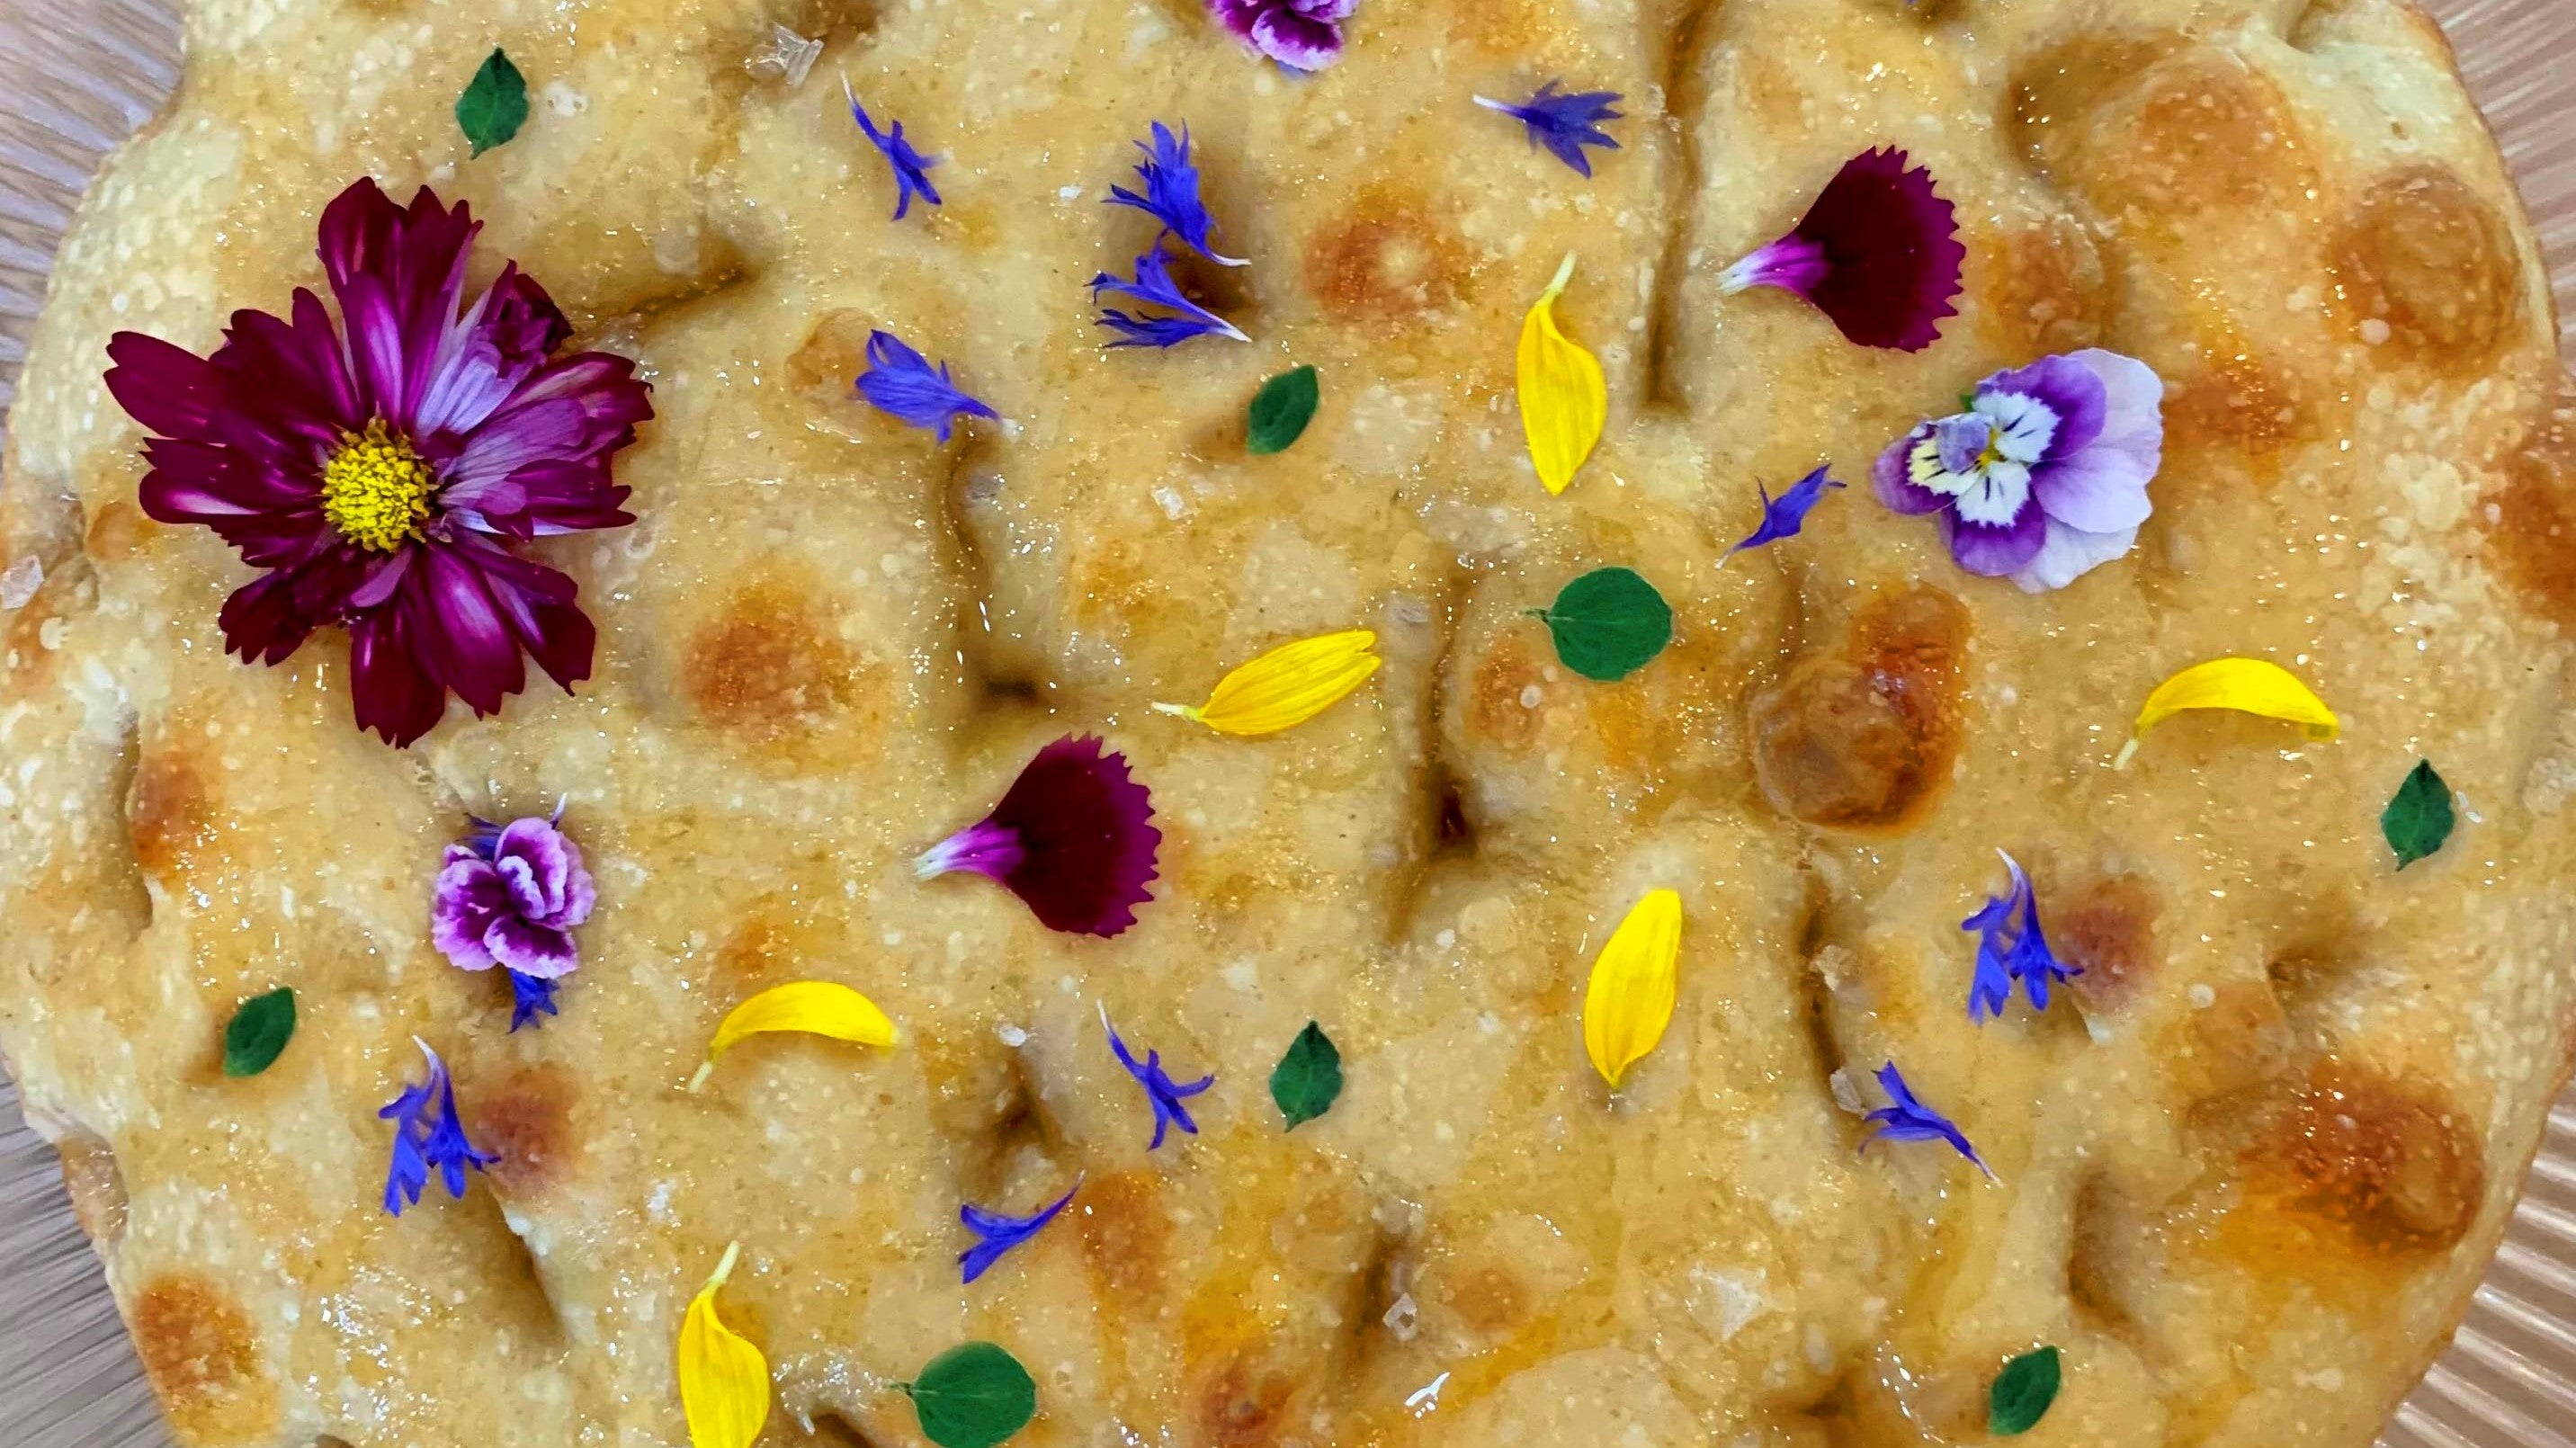 Round loaf of honey sea salt focaccia covered in edible flowers